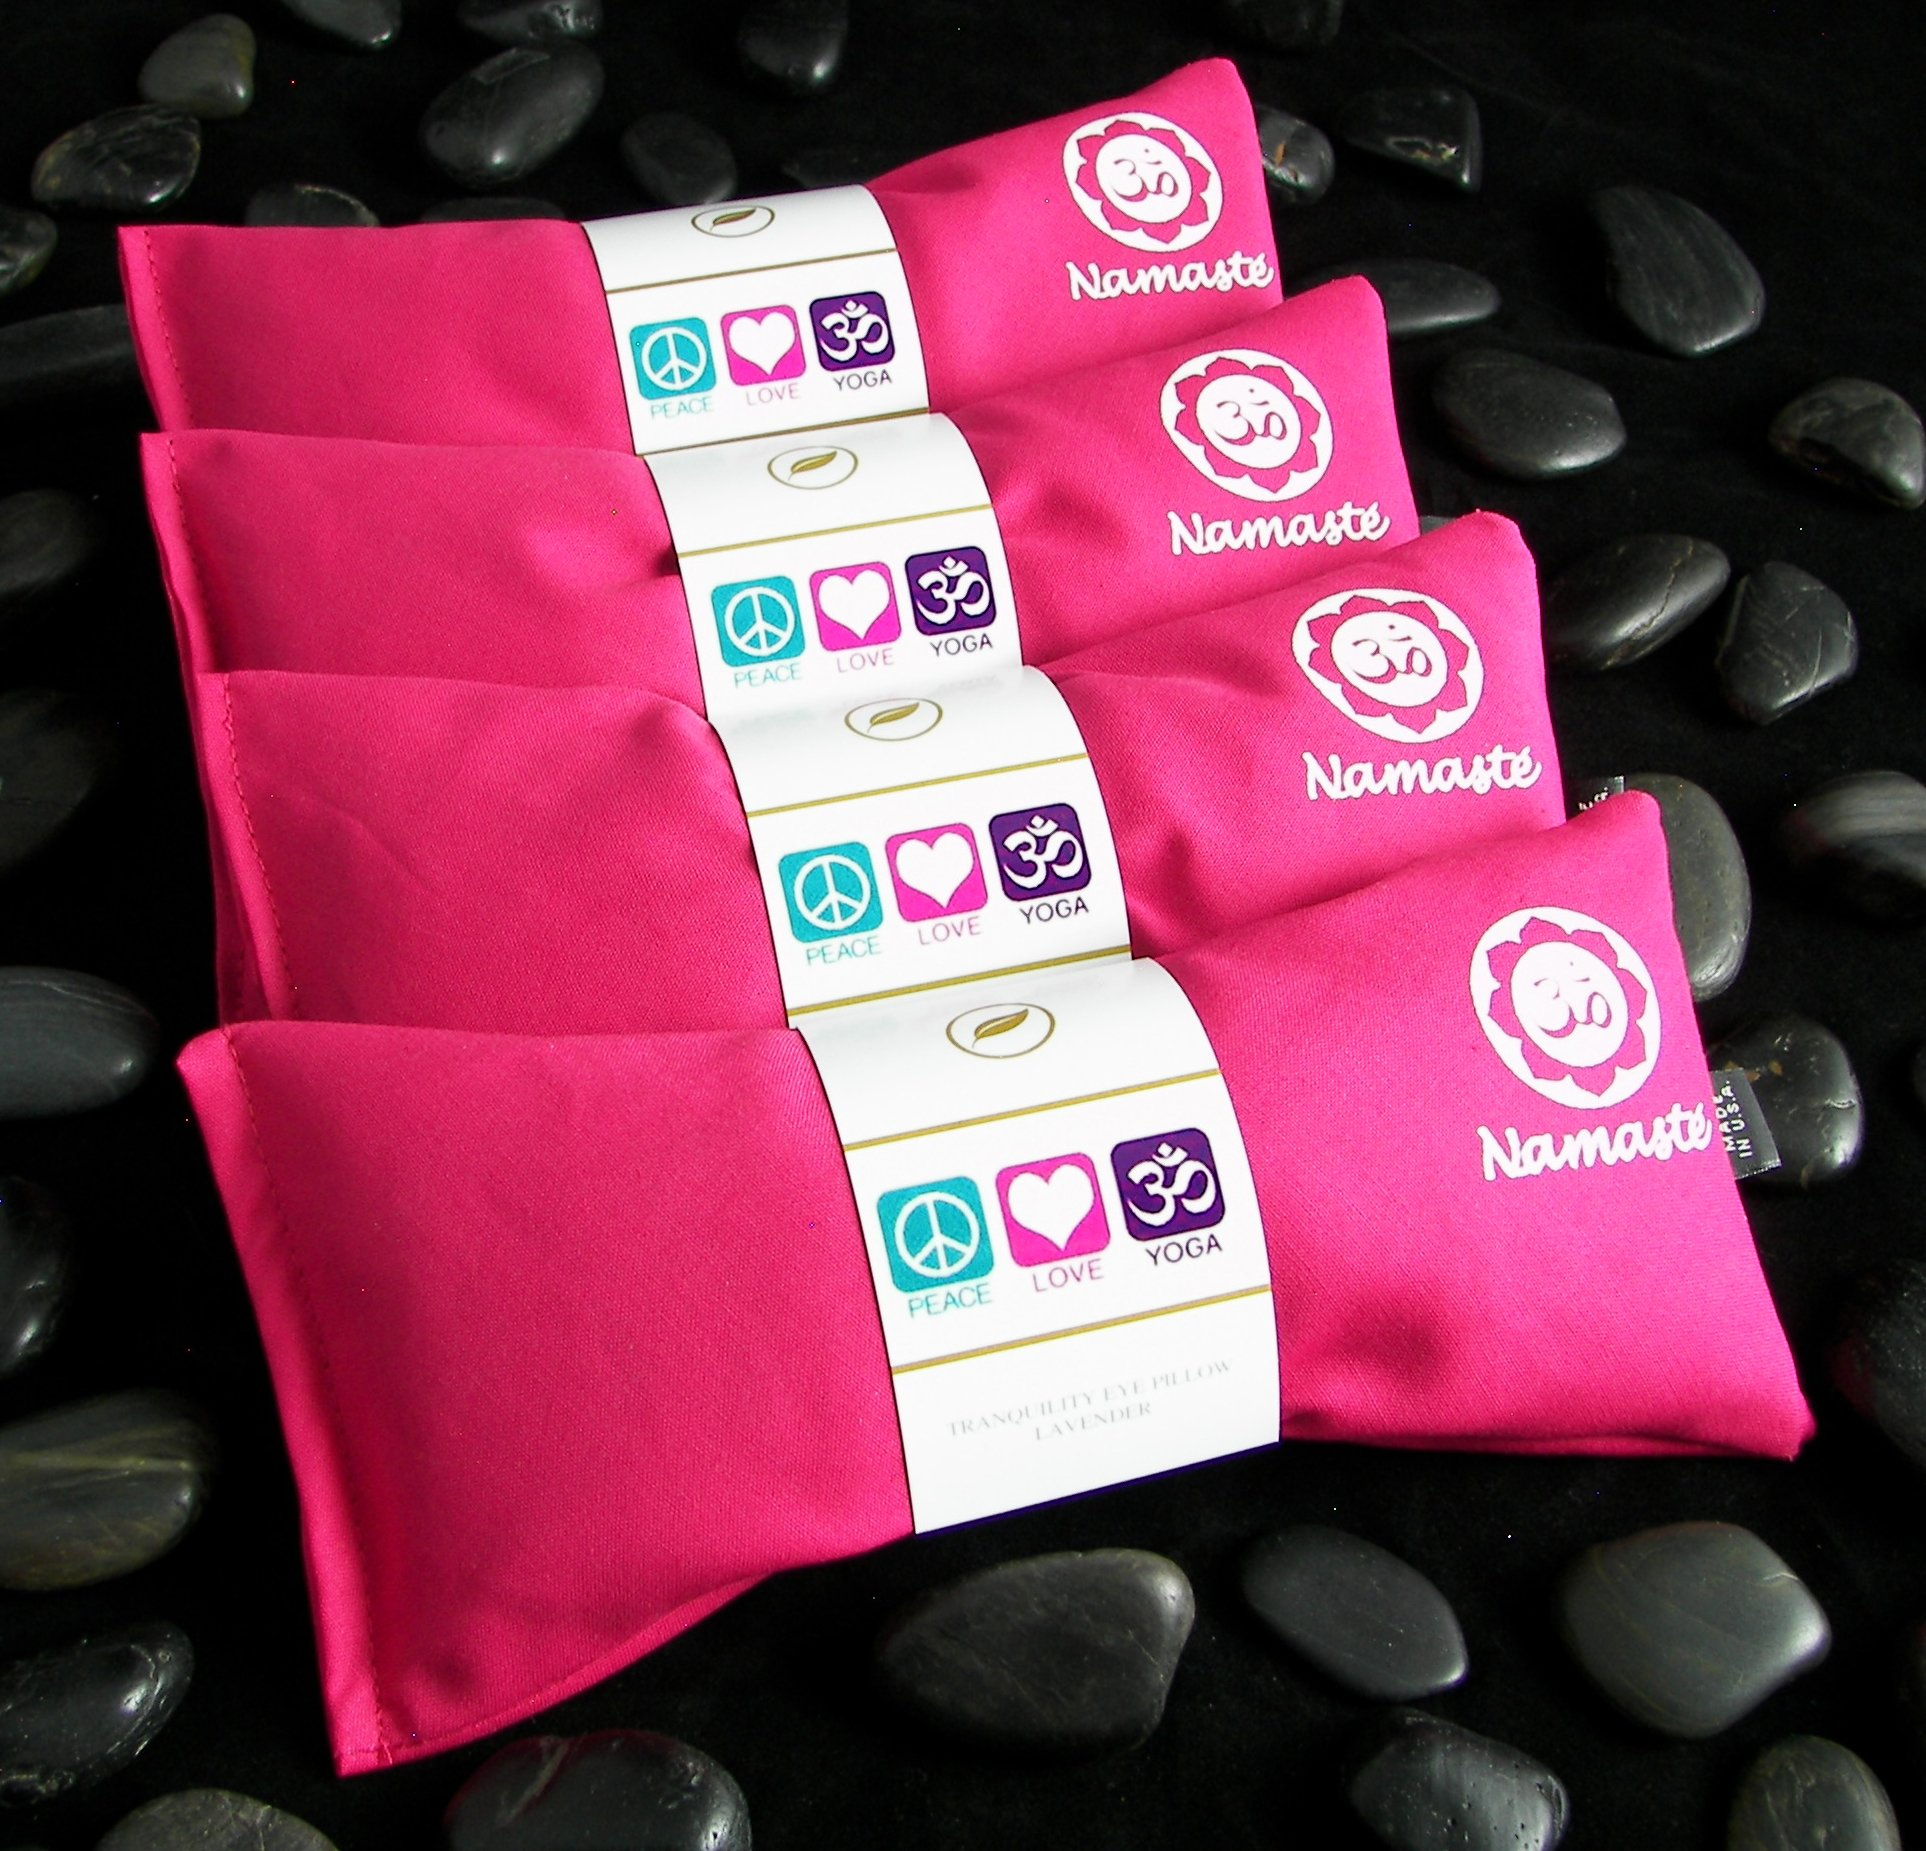 Namaste Yoga Lavender Eye Pillow - Pink - Set of 4